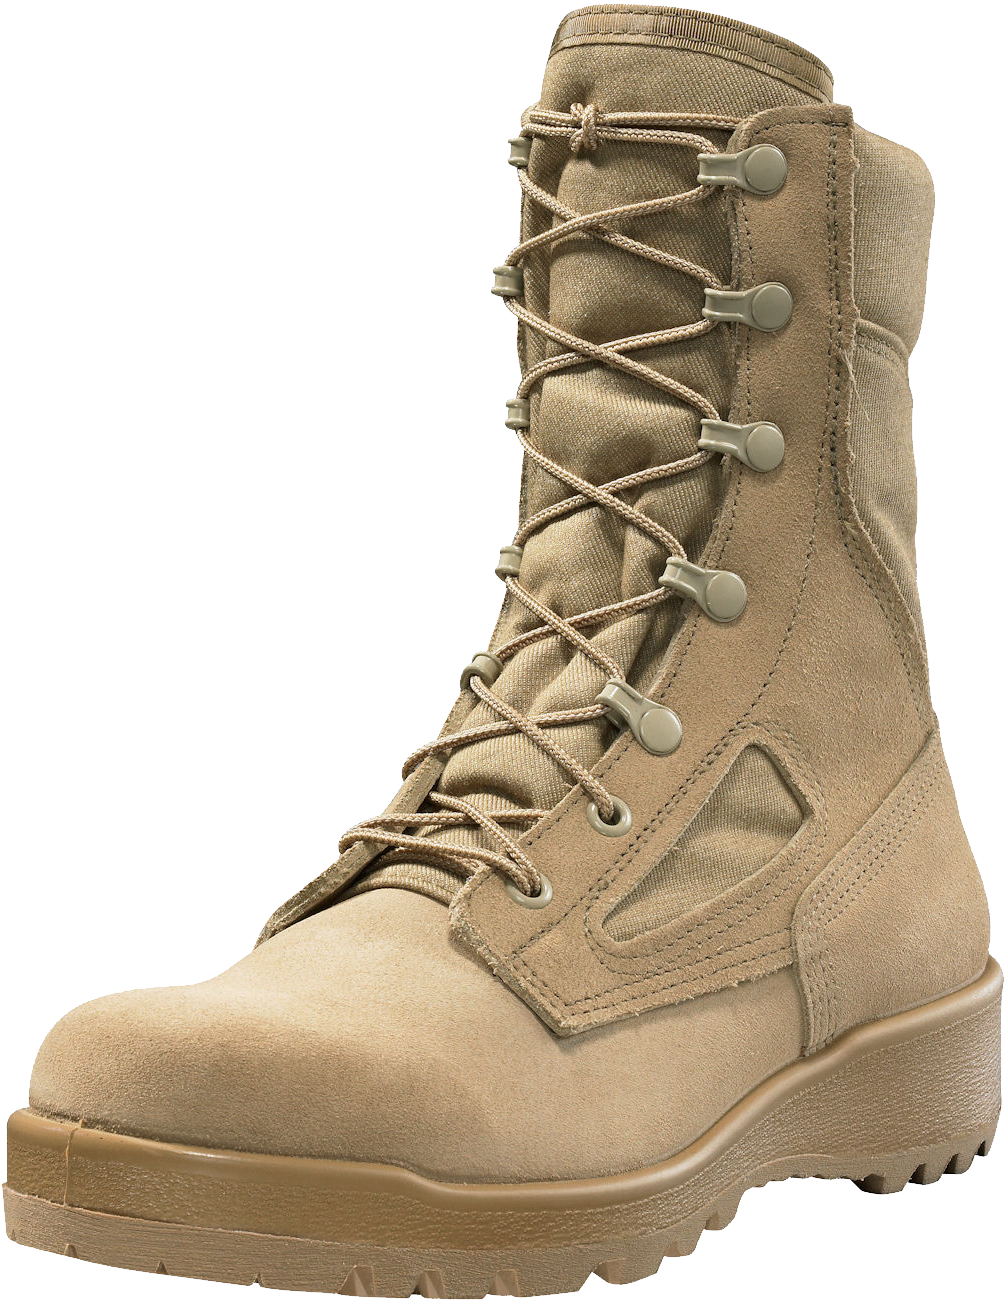 Dirty work boots png. Images free download boot